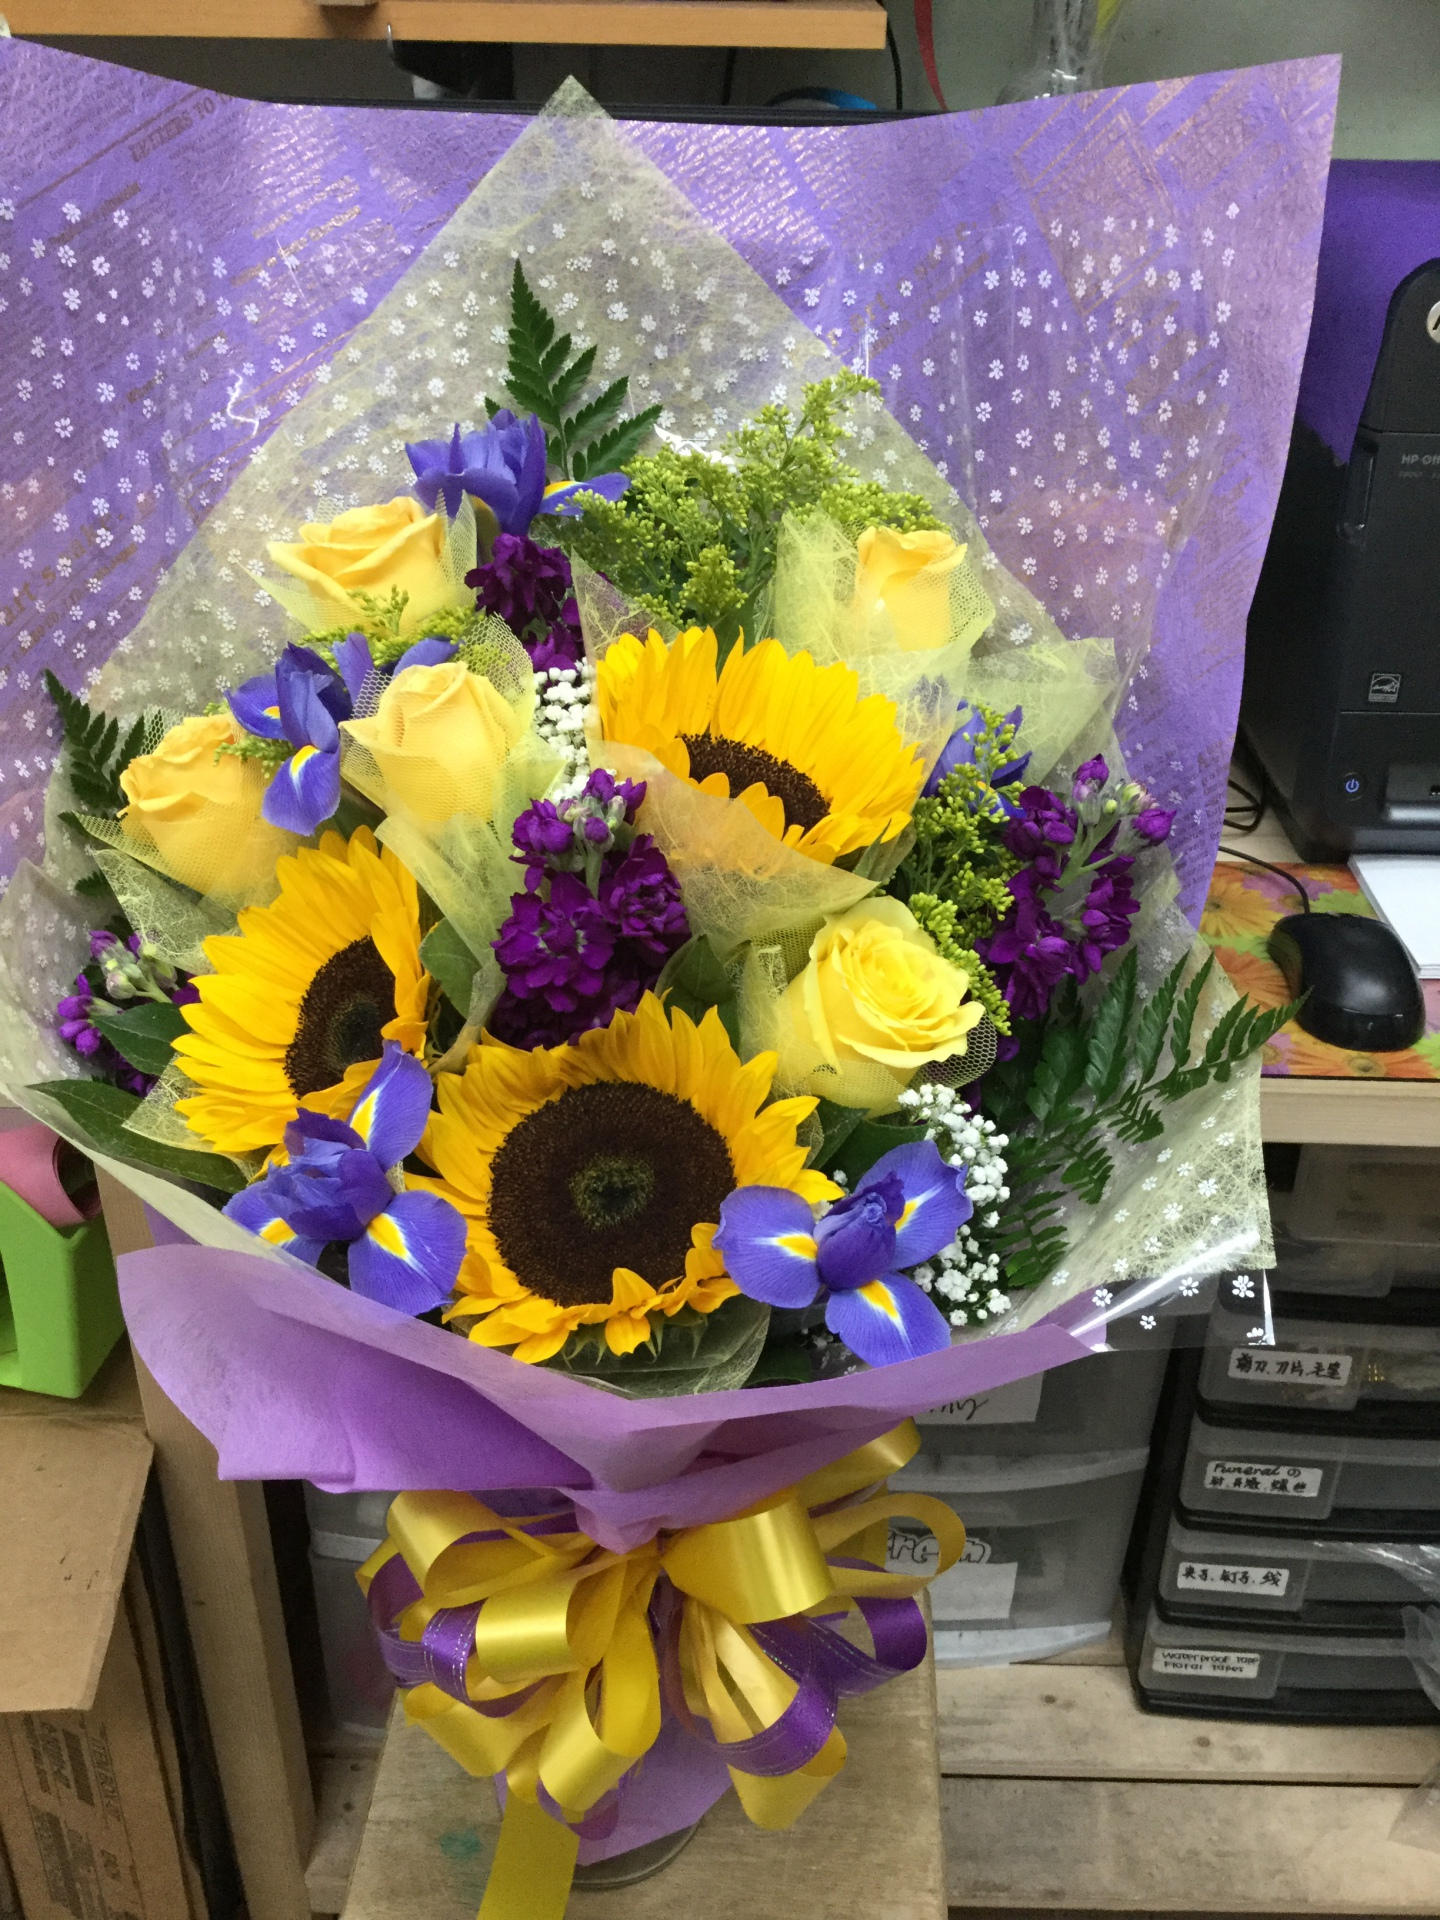 Mixed Wrap Bouquet with Sunflowers